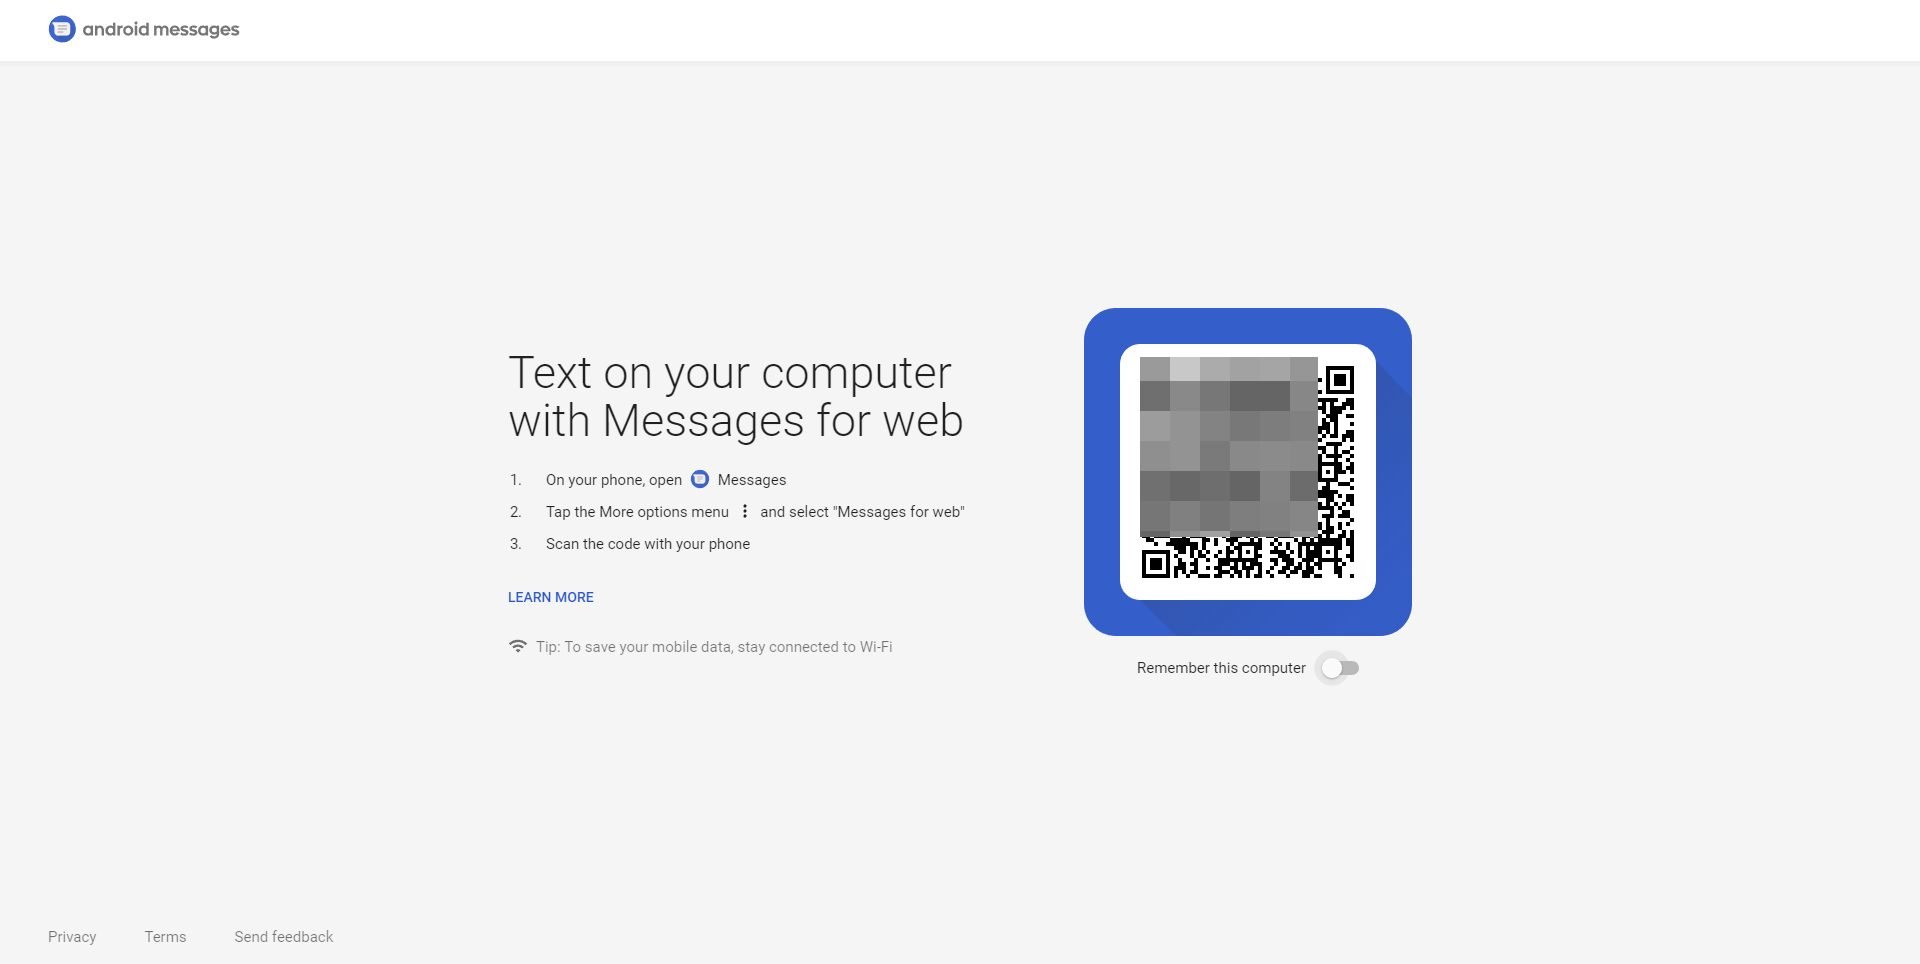 Update: Available to all] Android Messages web interface is